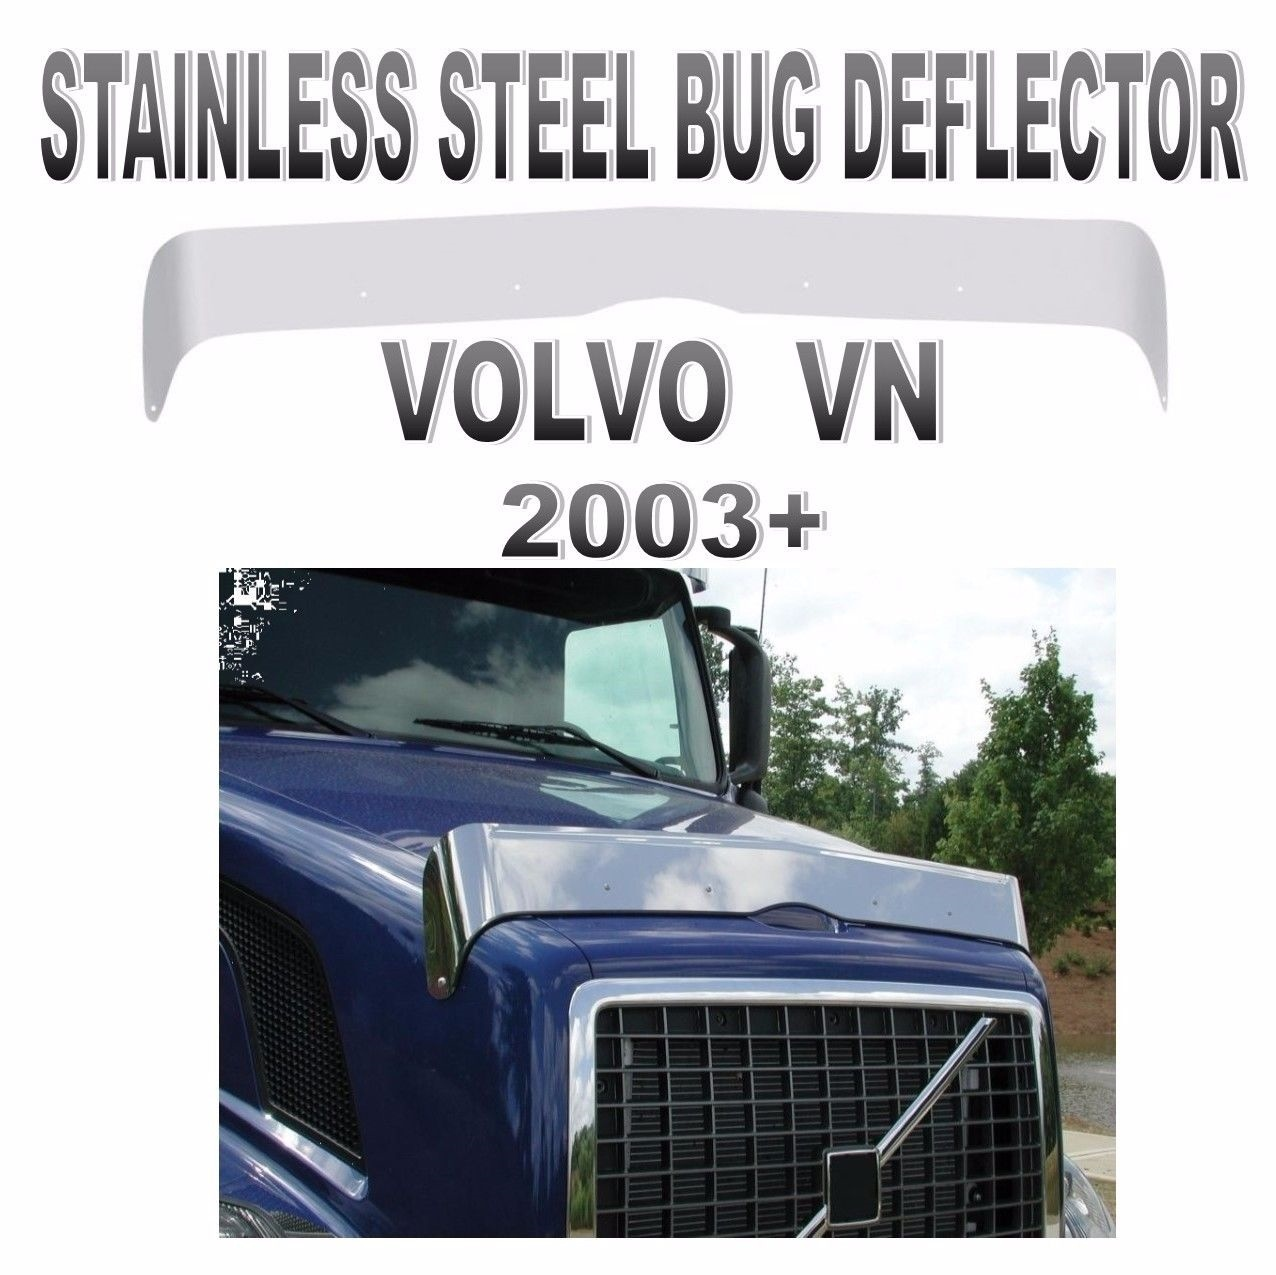 VOLVO VN Stainless Steel Bug Deflector (2003+ or Newer)